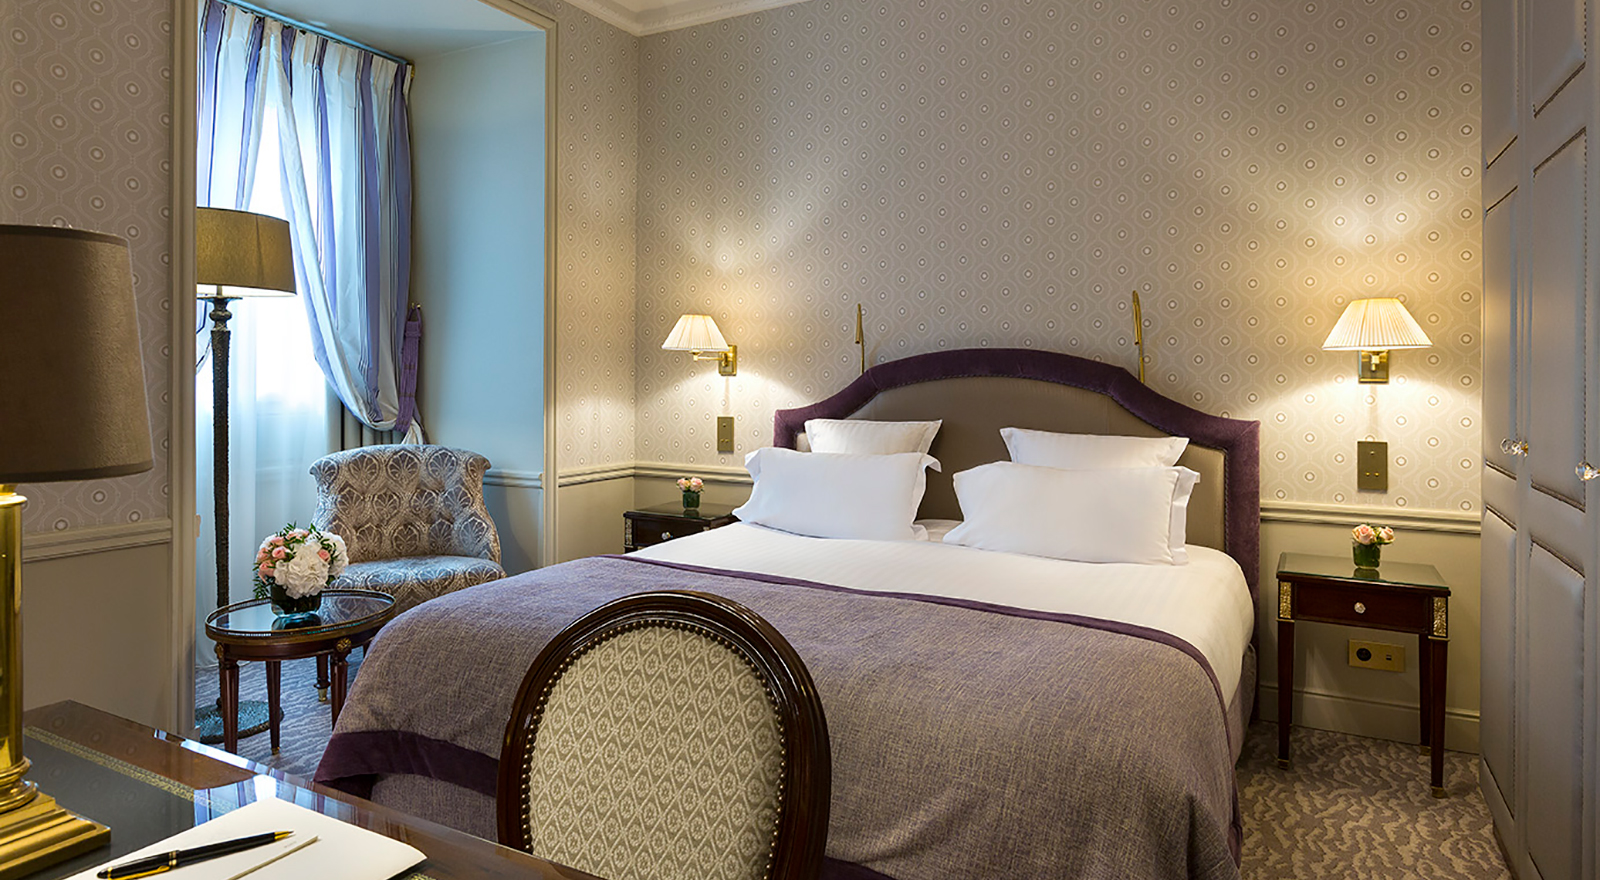 Signature Room of Warwick Hotels property